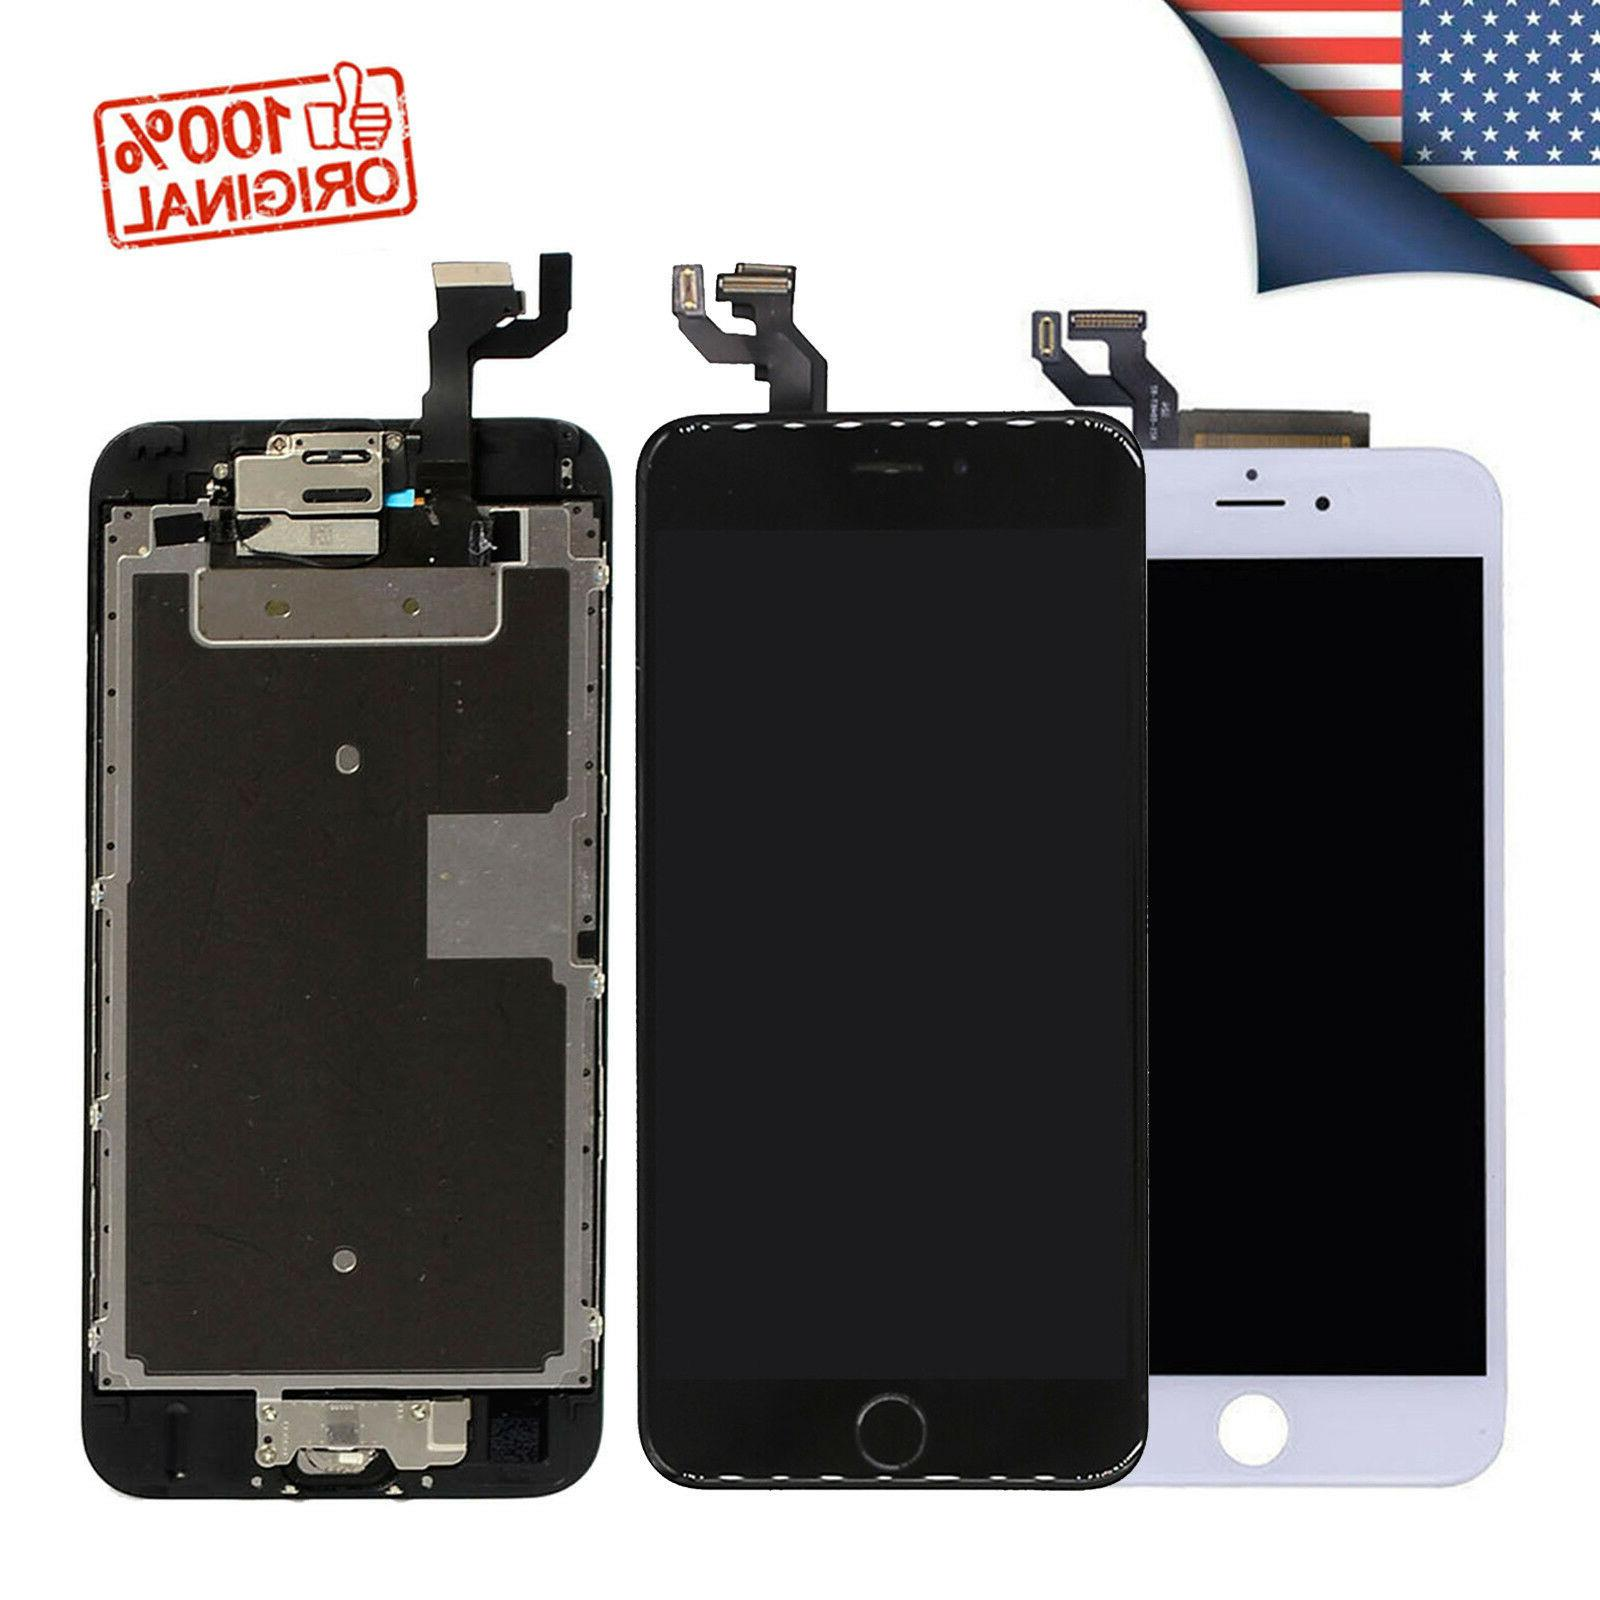 OEM iPhone Plus Complete Screen Button